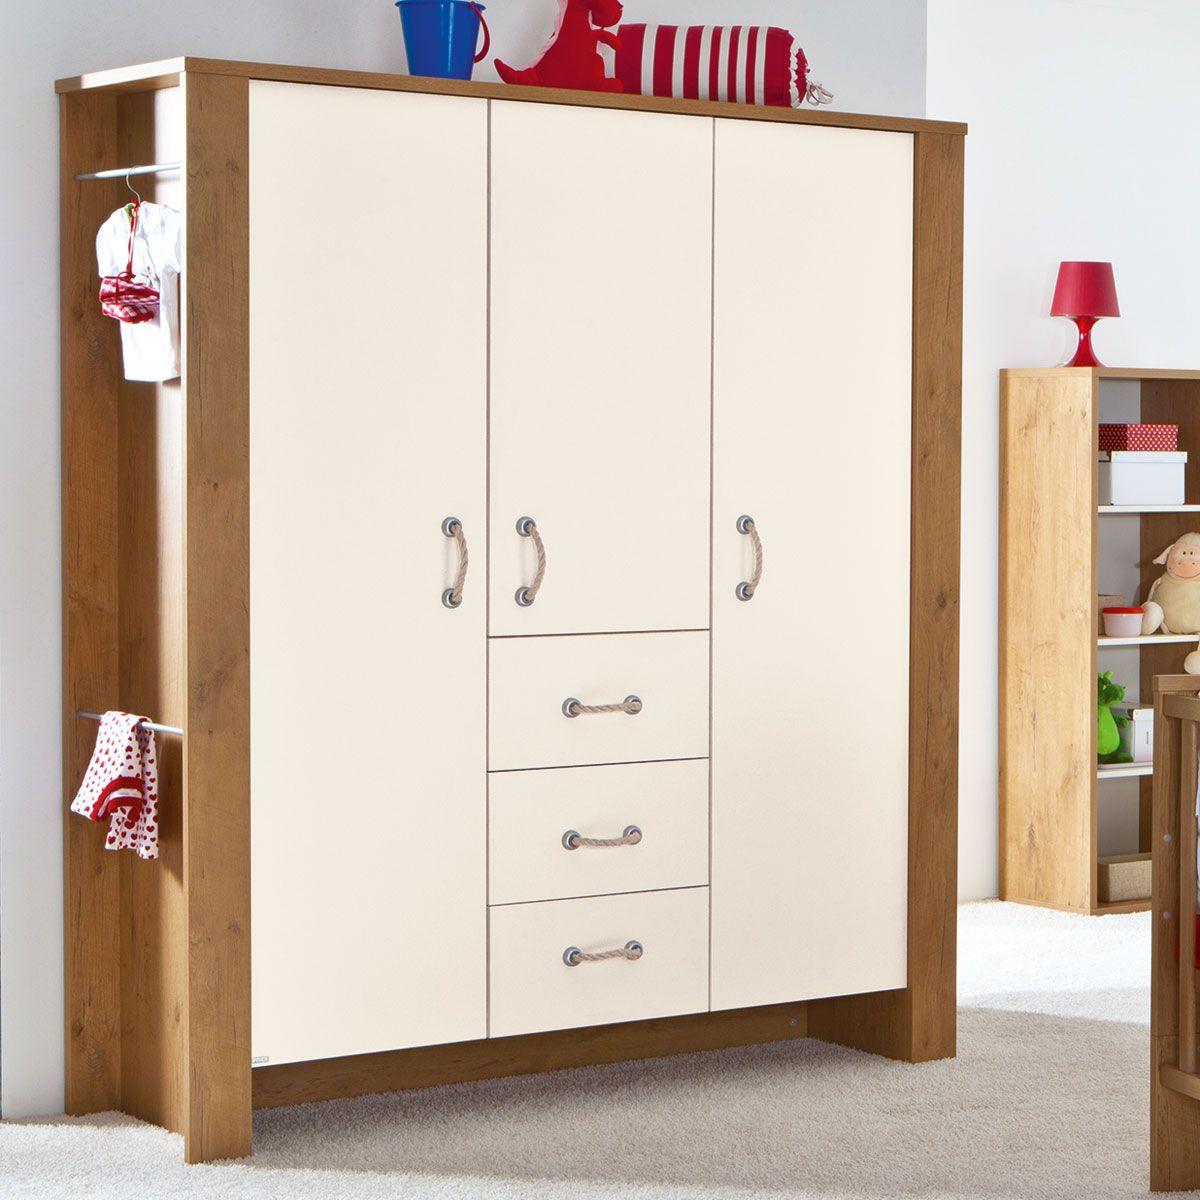 paidi henrik kleiderschrank eiche beige 3 t ren. Black Bedroom Furniture Sets. Home Design Ideas